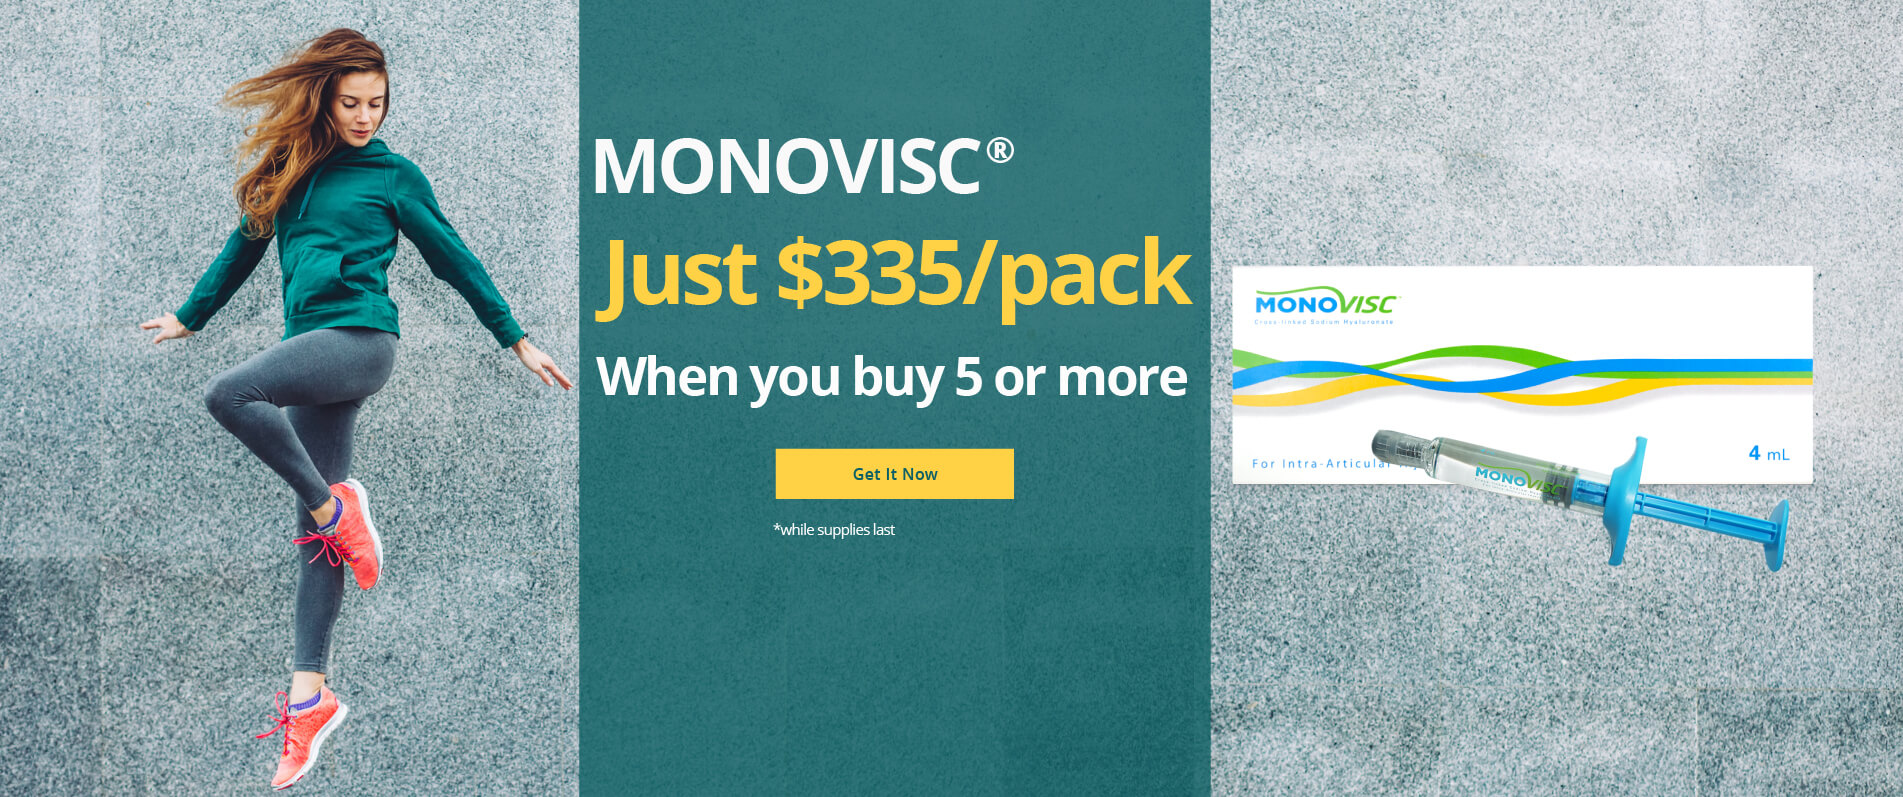 Buy 5 or more Monovisc for just $335/pack